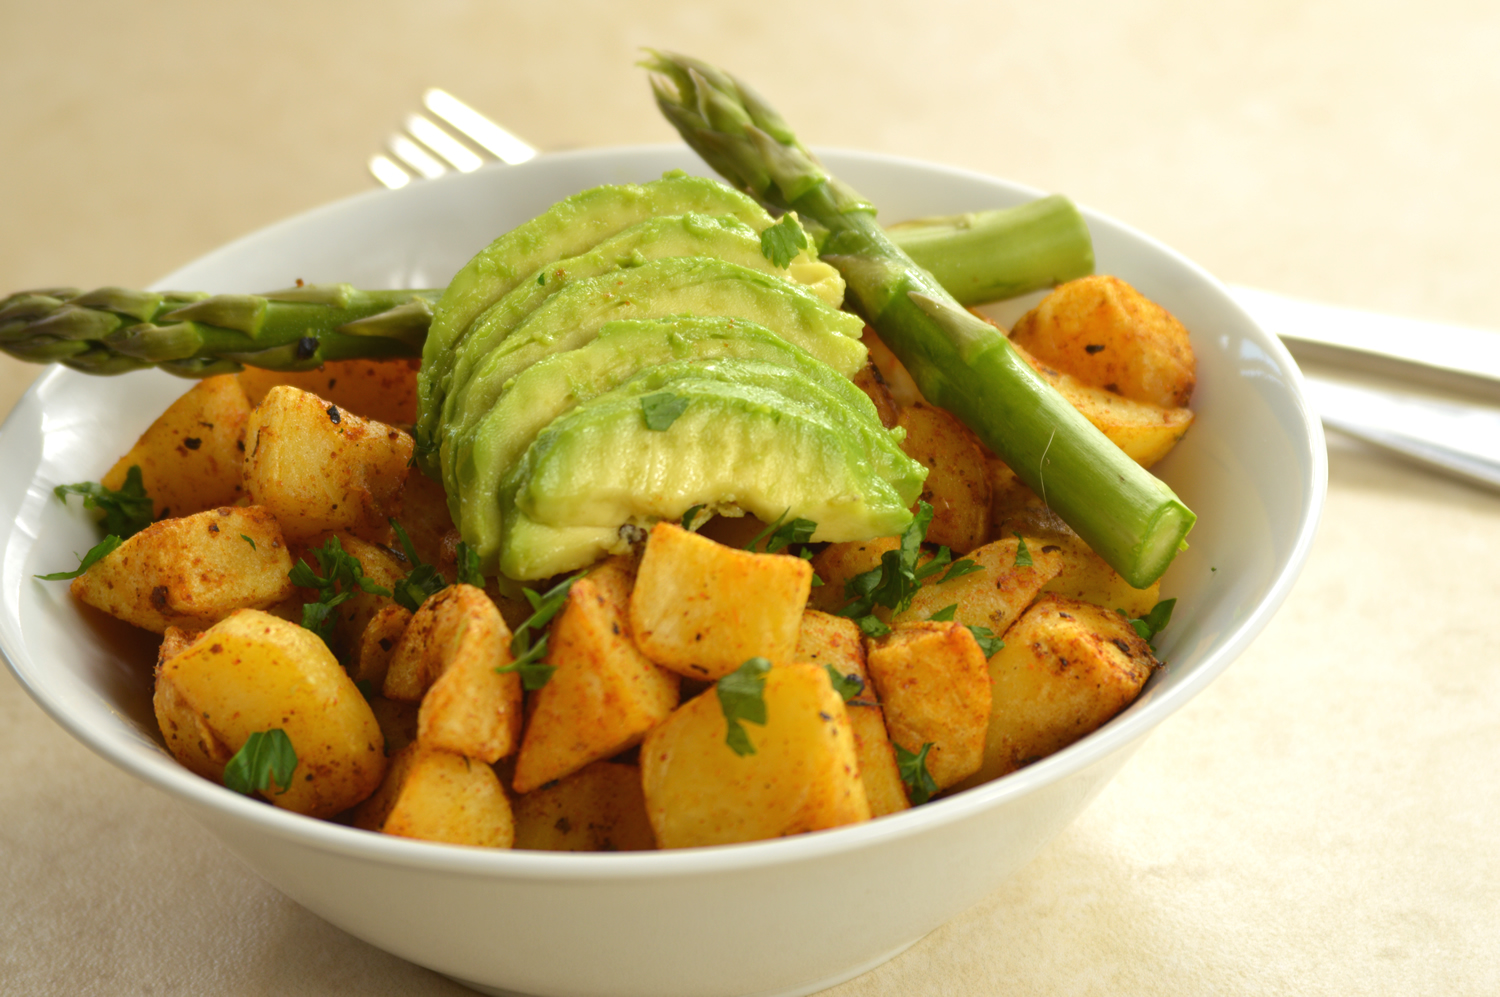 Cheshire farm chips spicy bites with avocado meal ideas